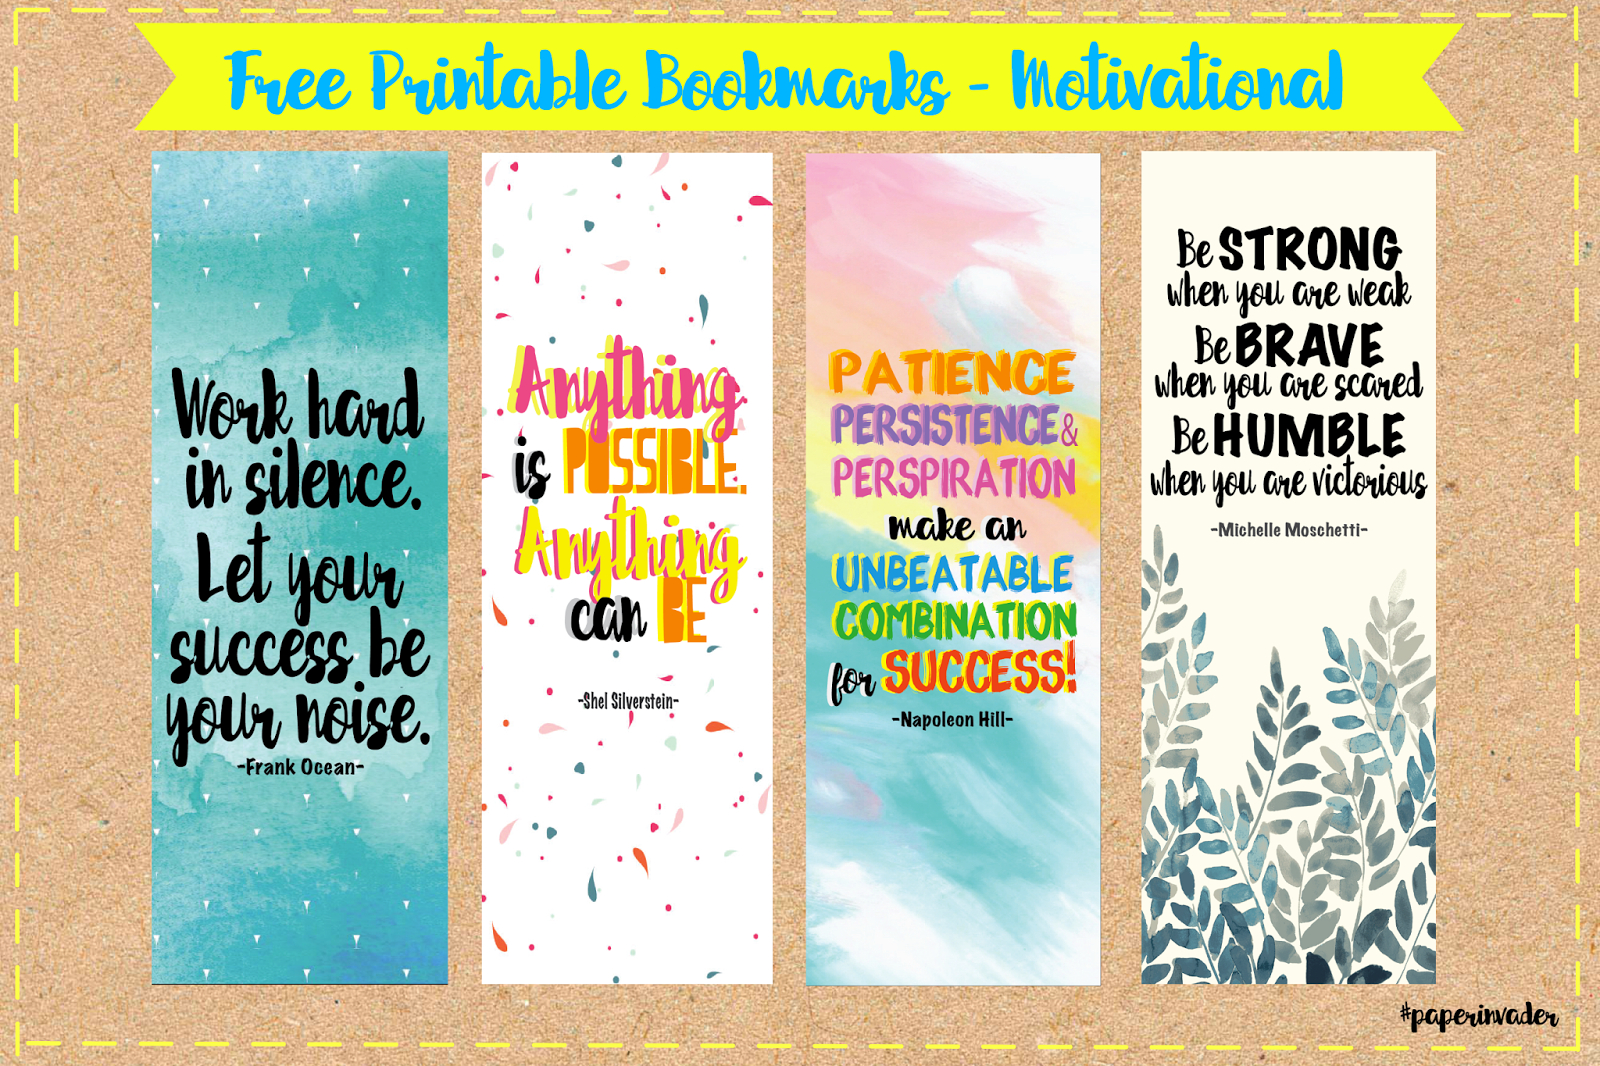 Paper Invader: Free Printable Bookmarks - Motivational - Free Printable Back To School Bookmarks